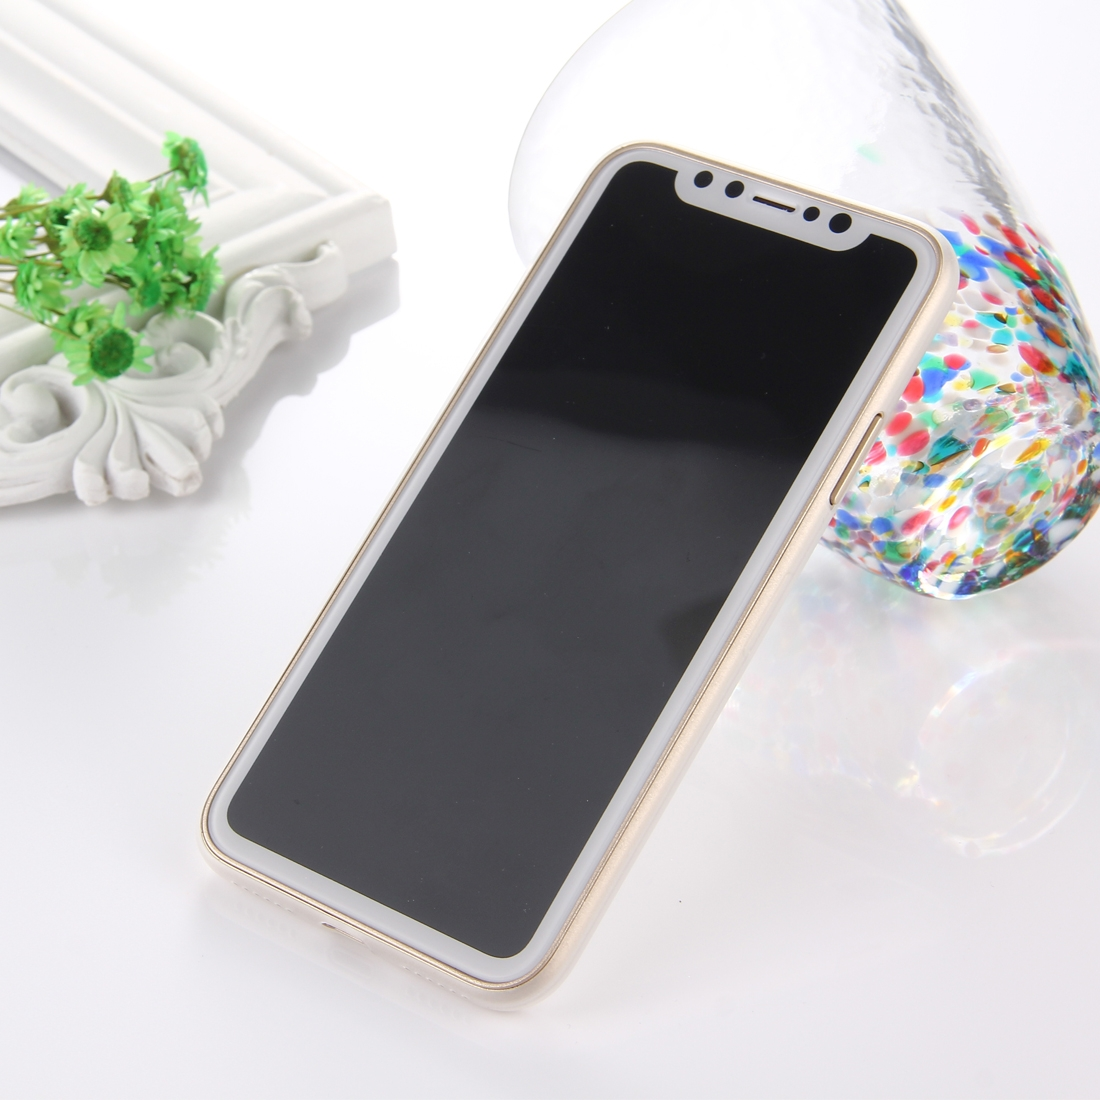 Ultra-Thin-Case-0-3mm-for-iPhone-XS-X-Super-Slim-Hard-Protective-Cover-New-Desi miniatuur 4